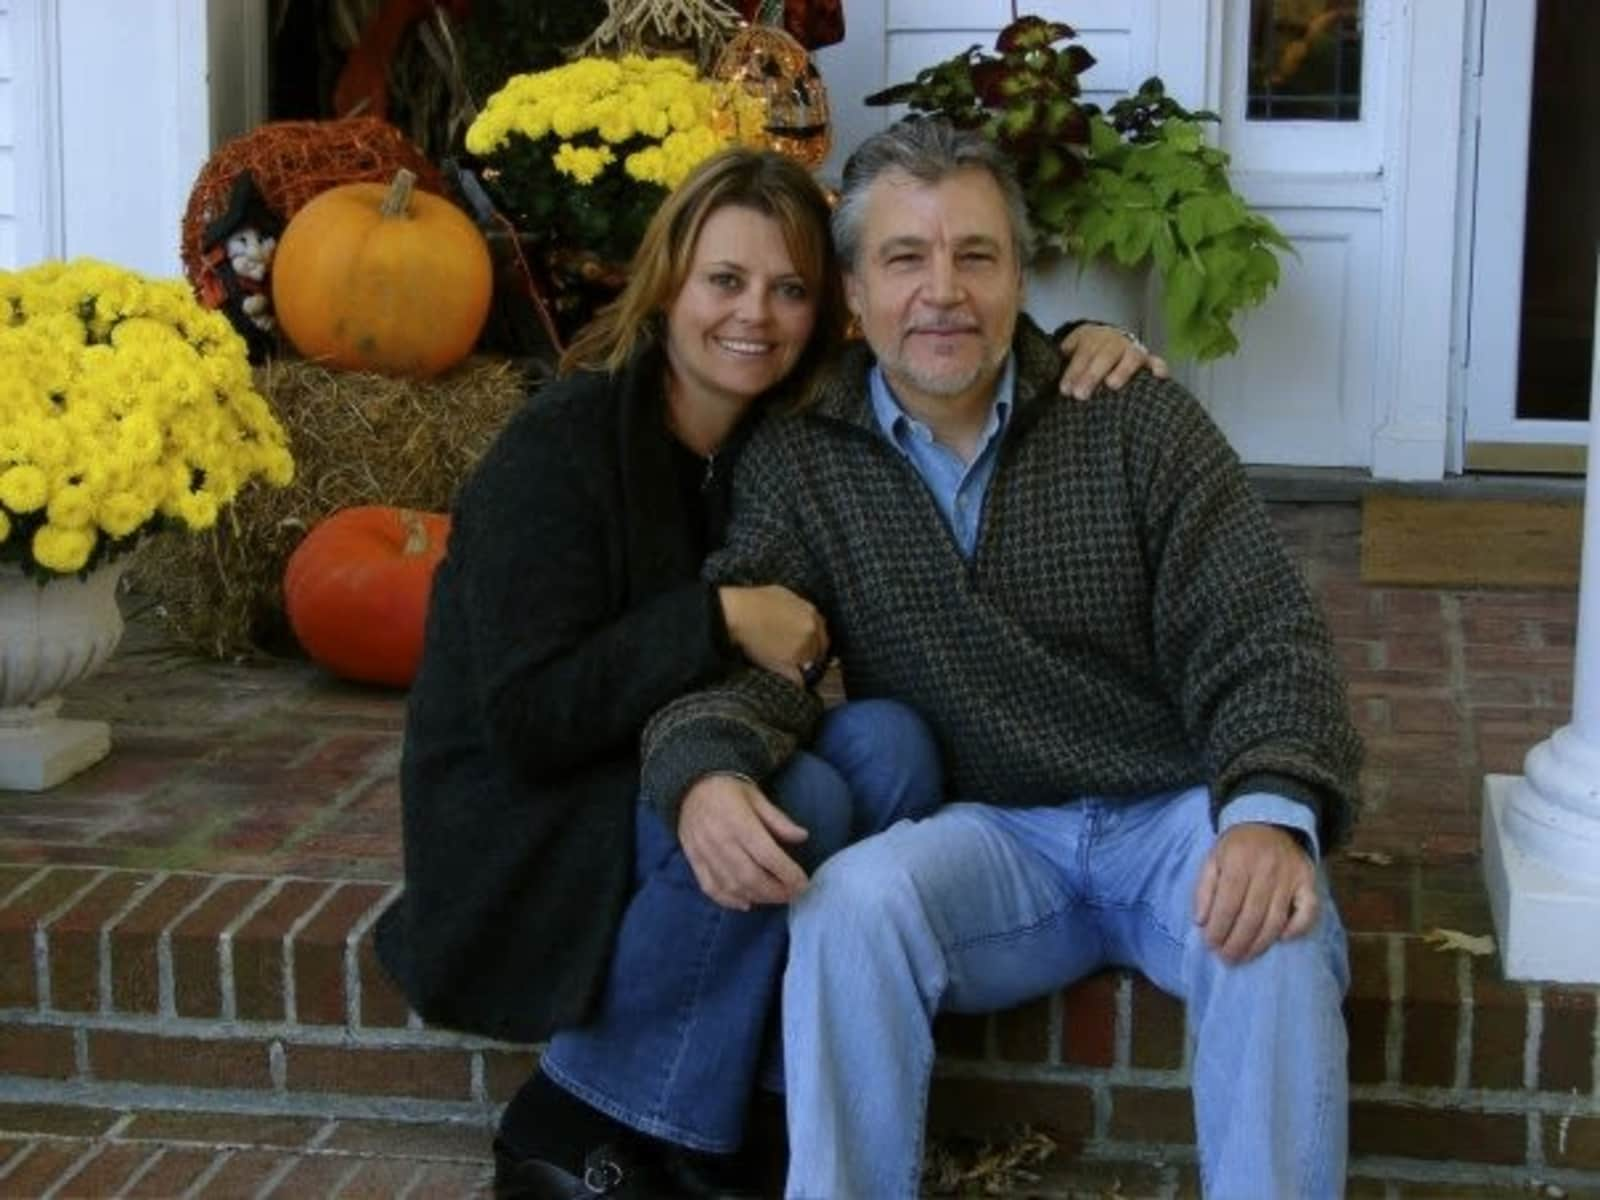 Kathy & Robert from Paramus, New Jersey, United States